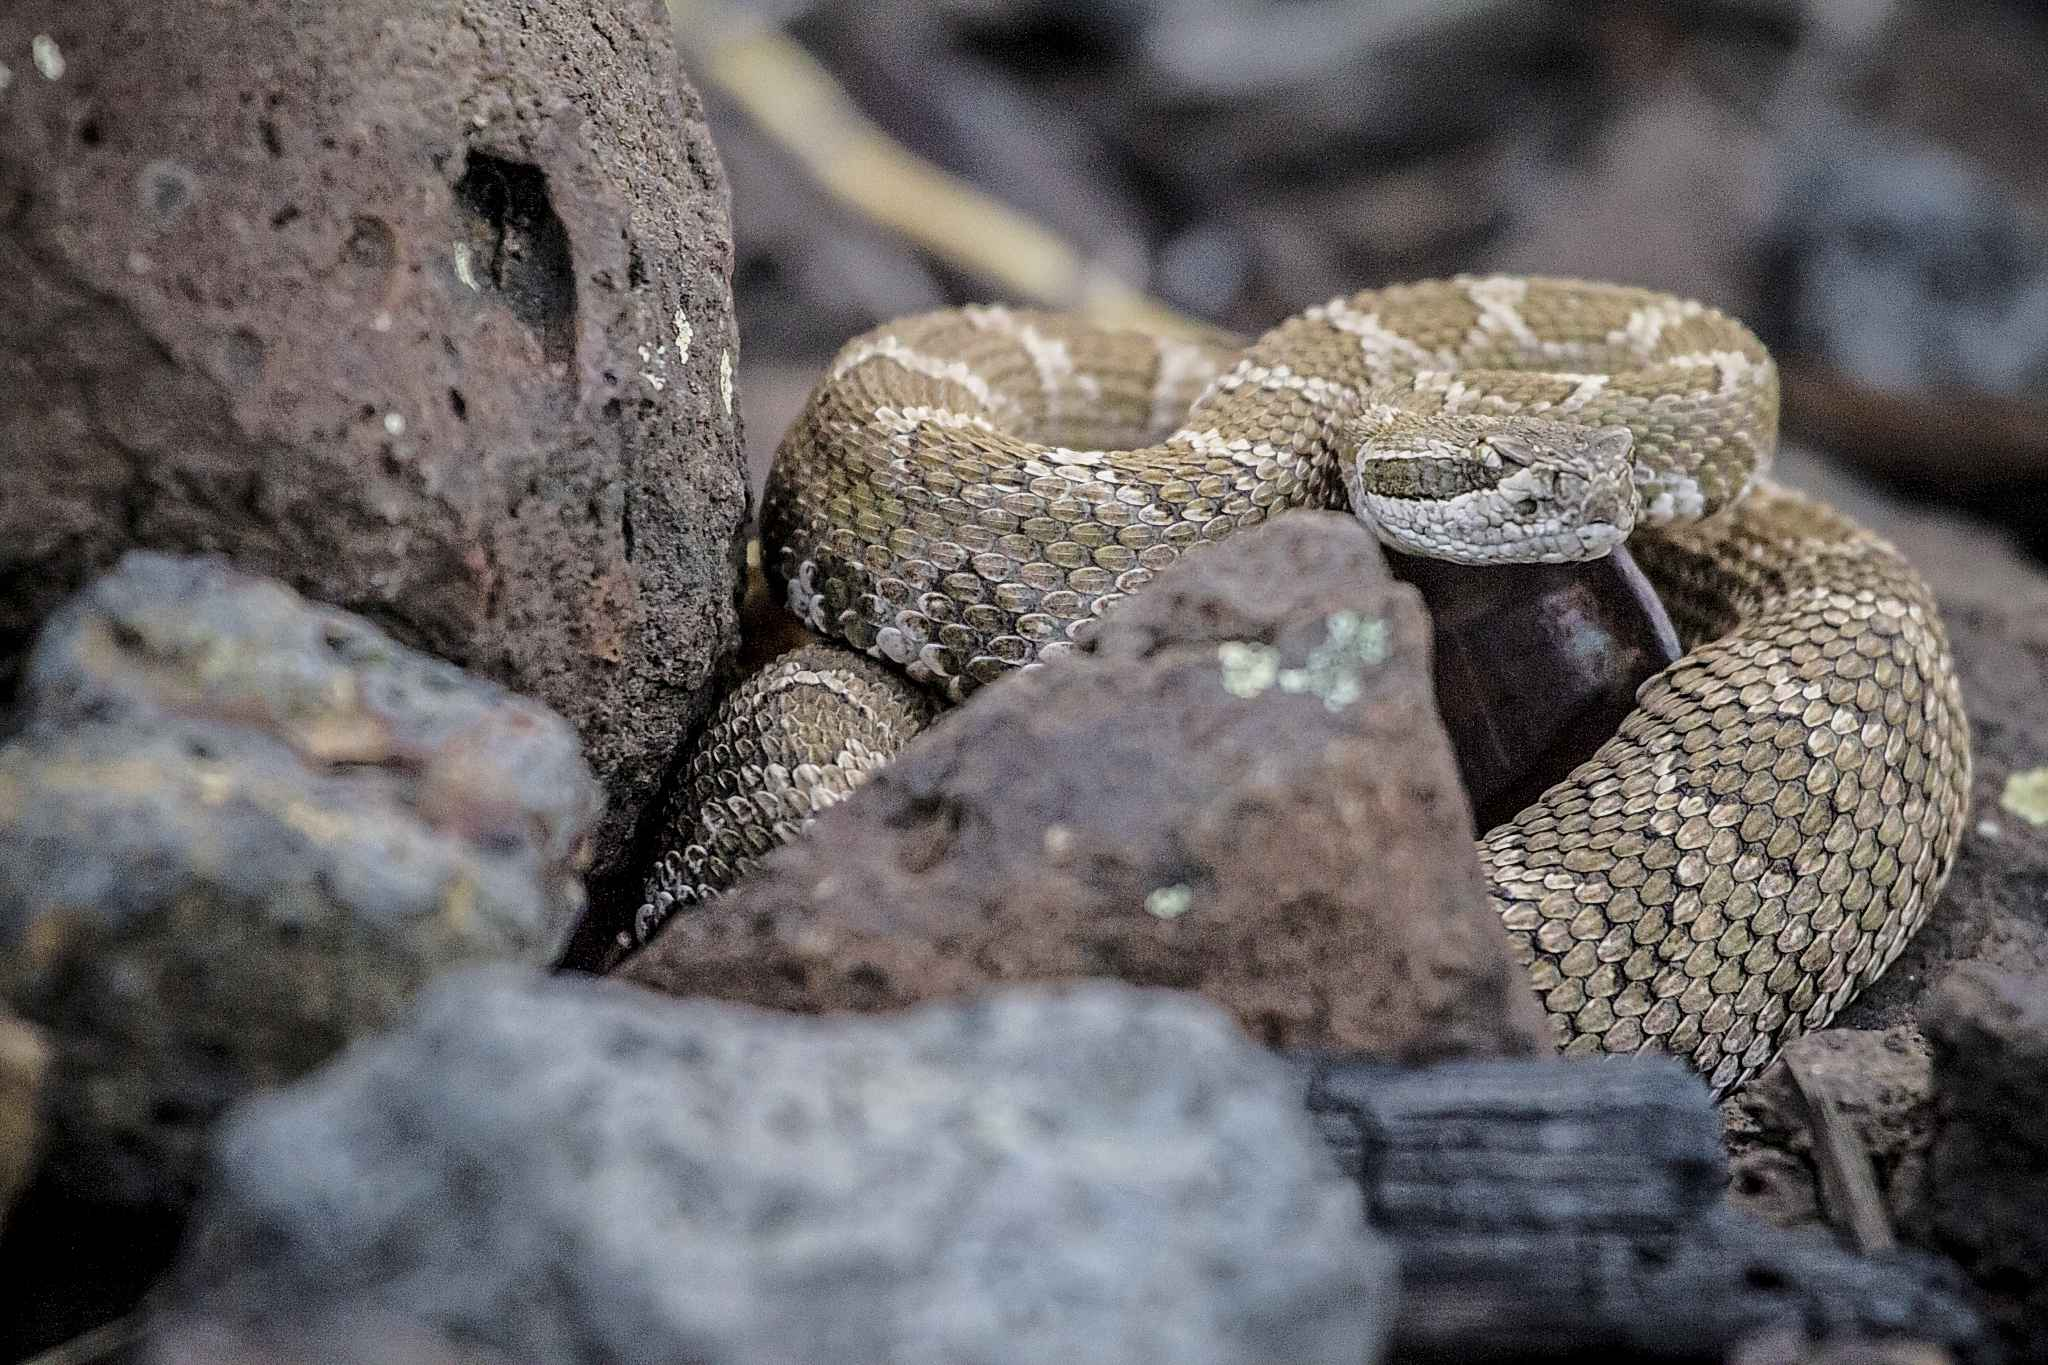 A rattlesnake on the shore of the Columbia River.